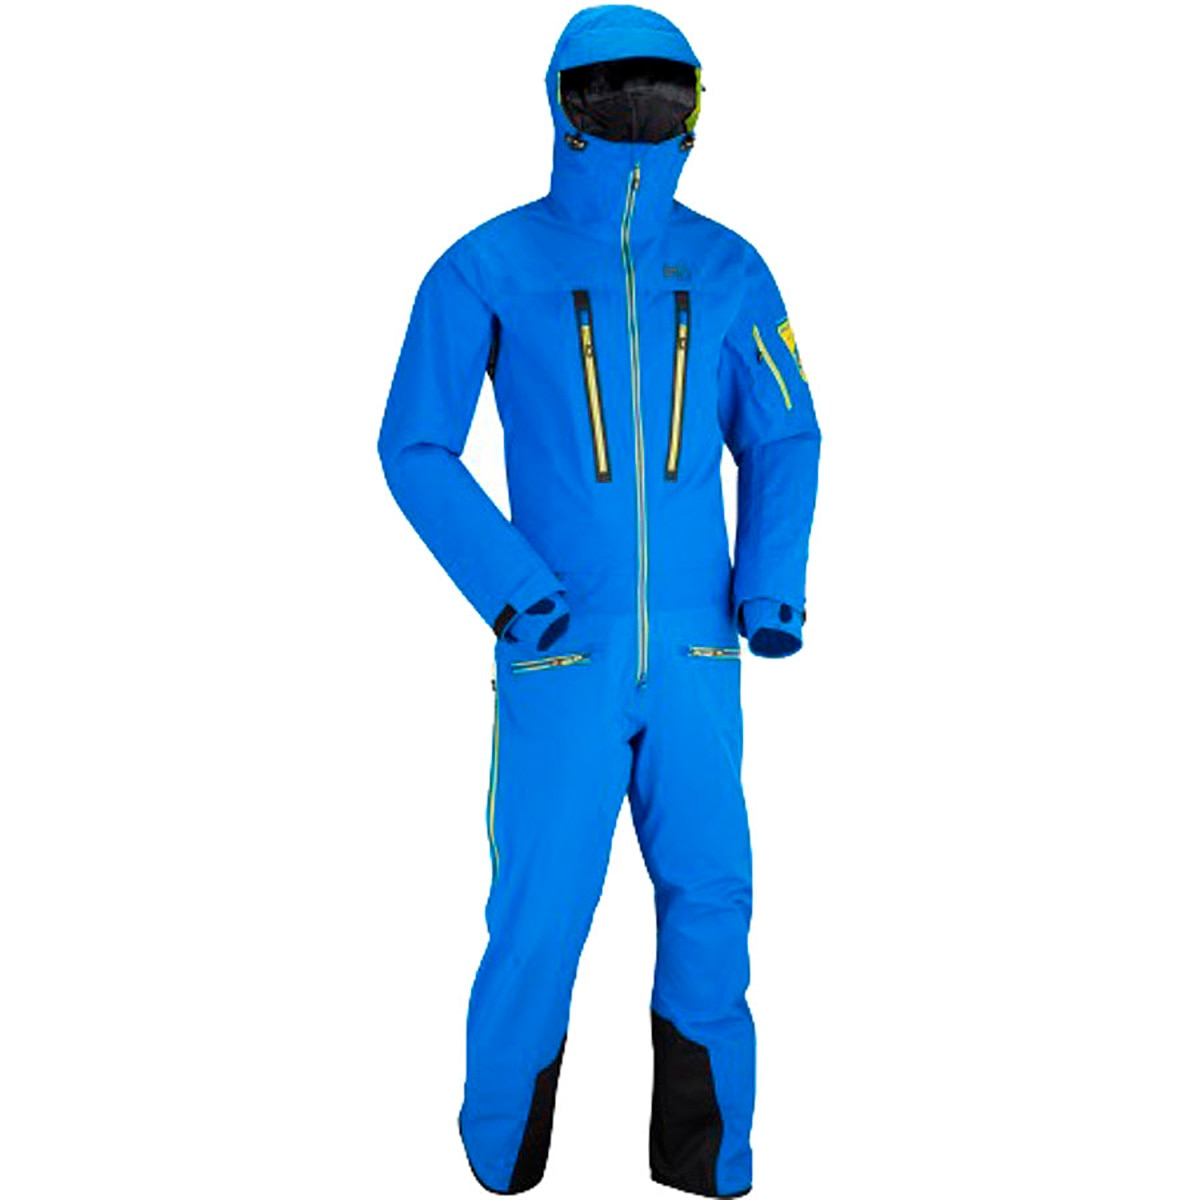 Millet Bimb Pro GTX One-Piece Suit